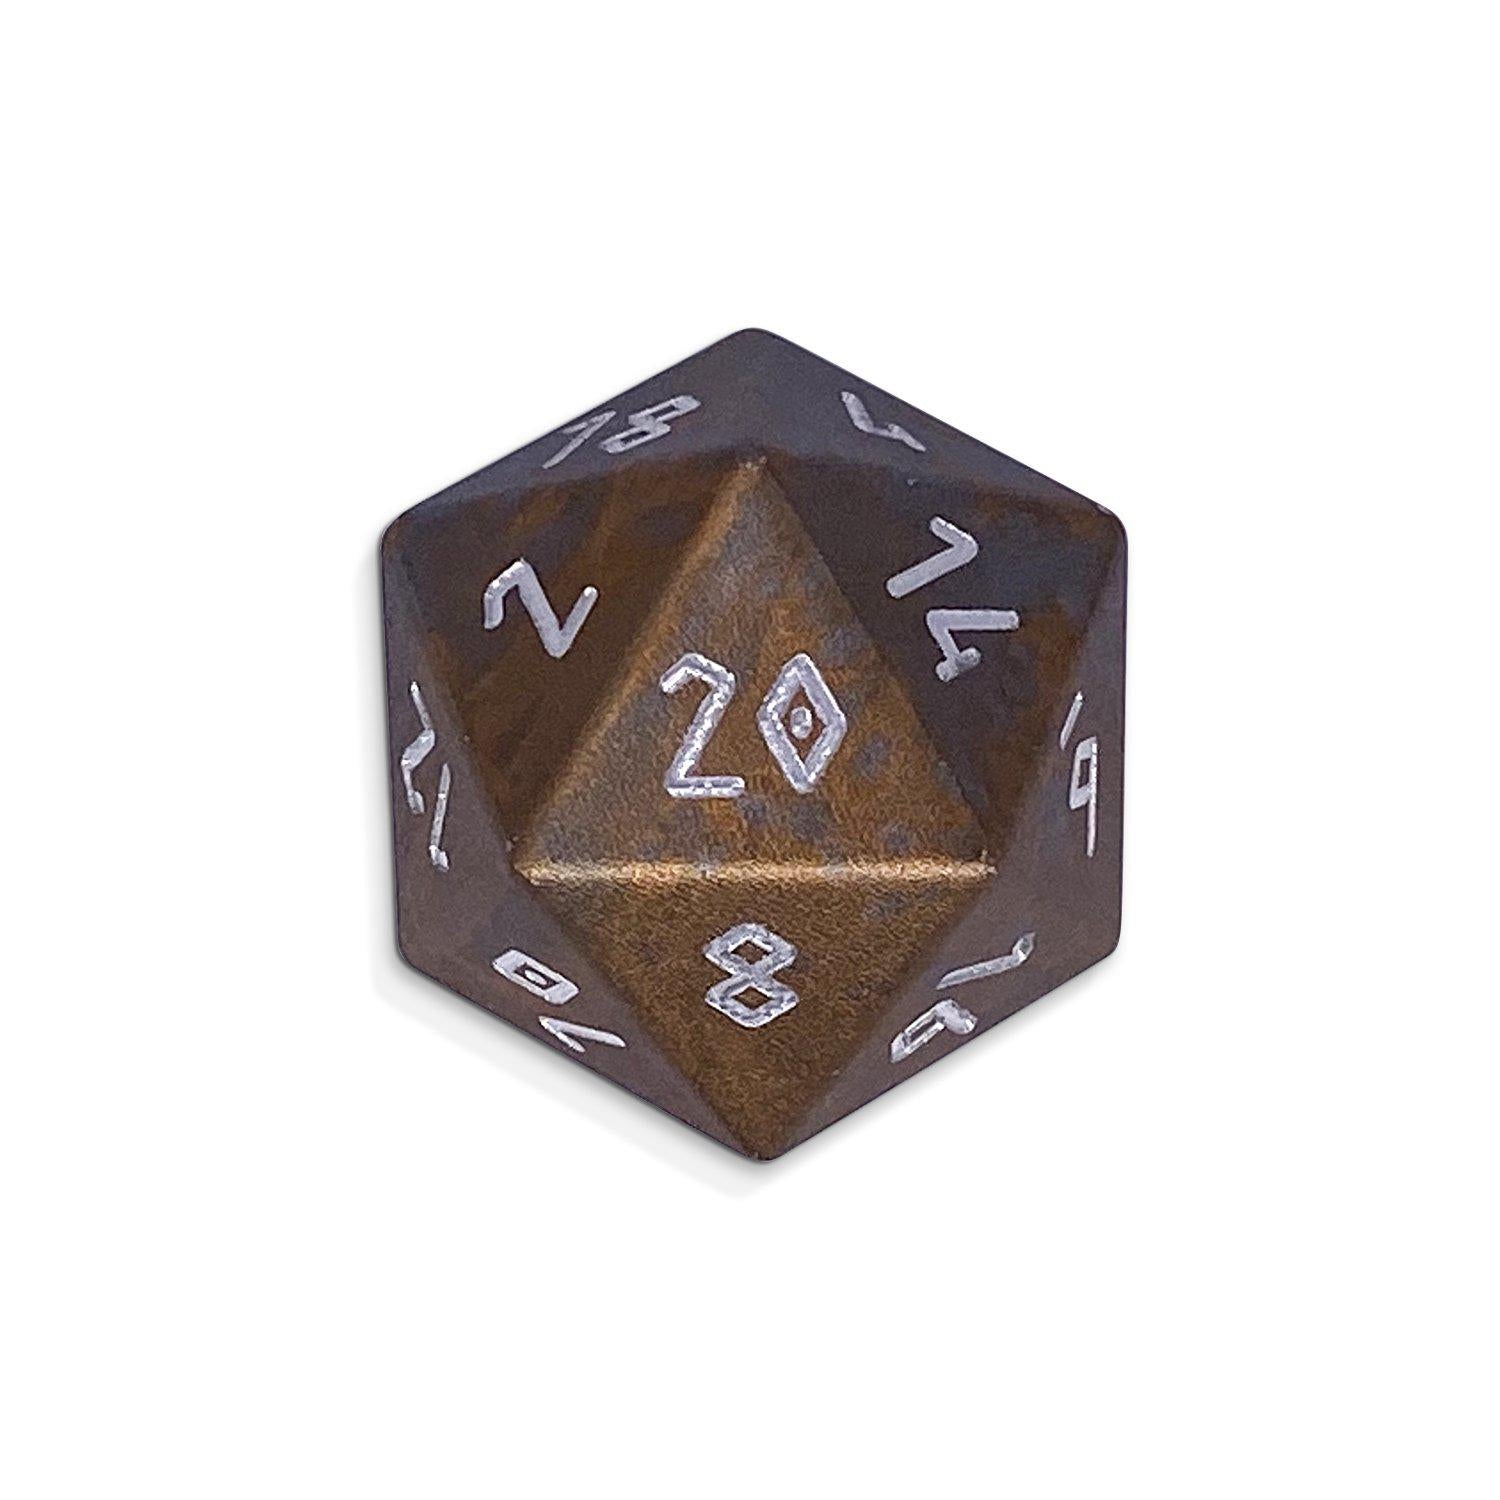 Desert Sand - Single D20 Wondrous 20mm 6063 Aircraft Grade Aluminum Metal Die